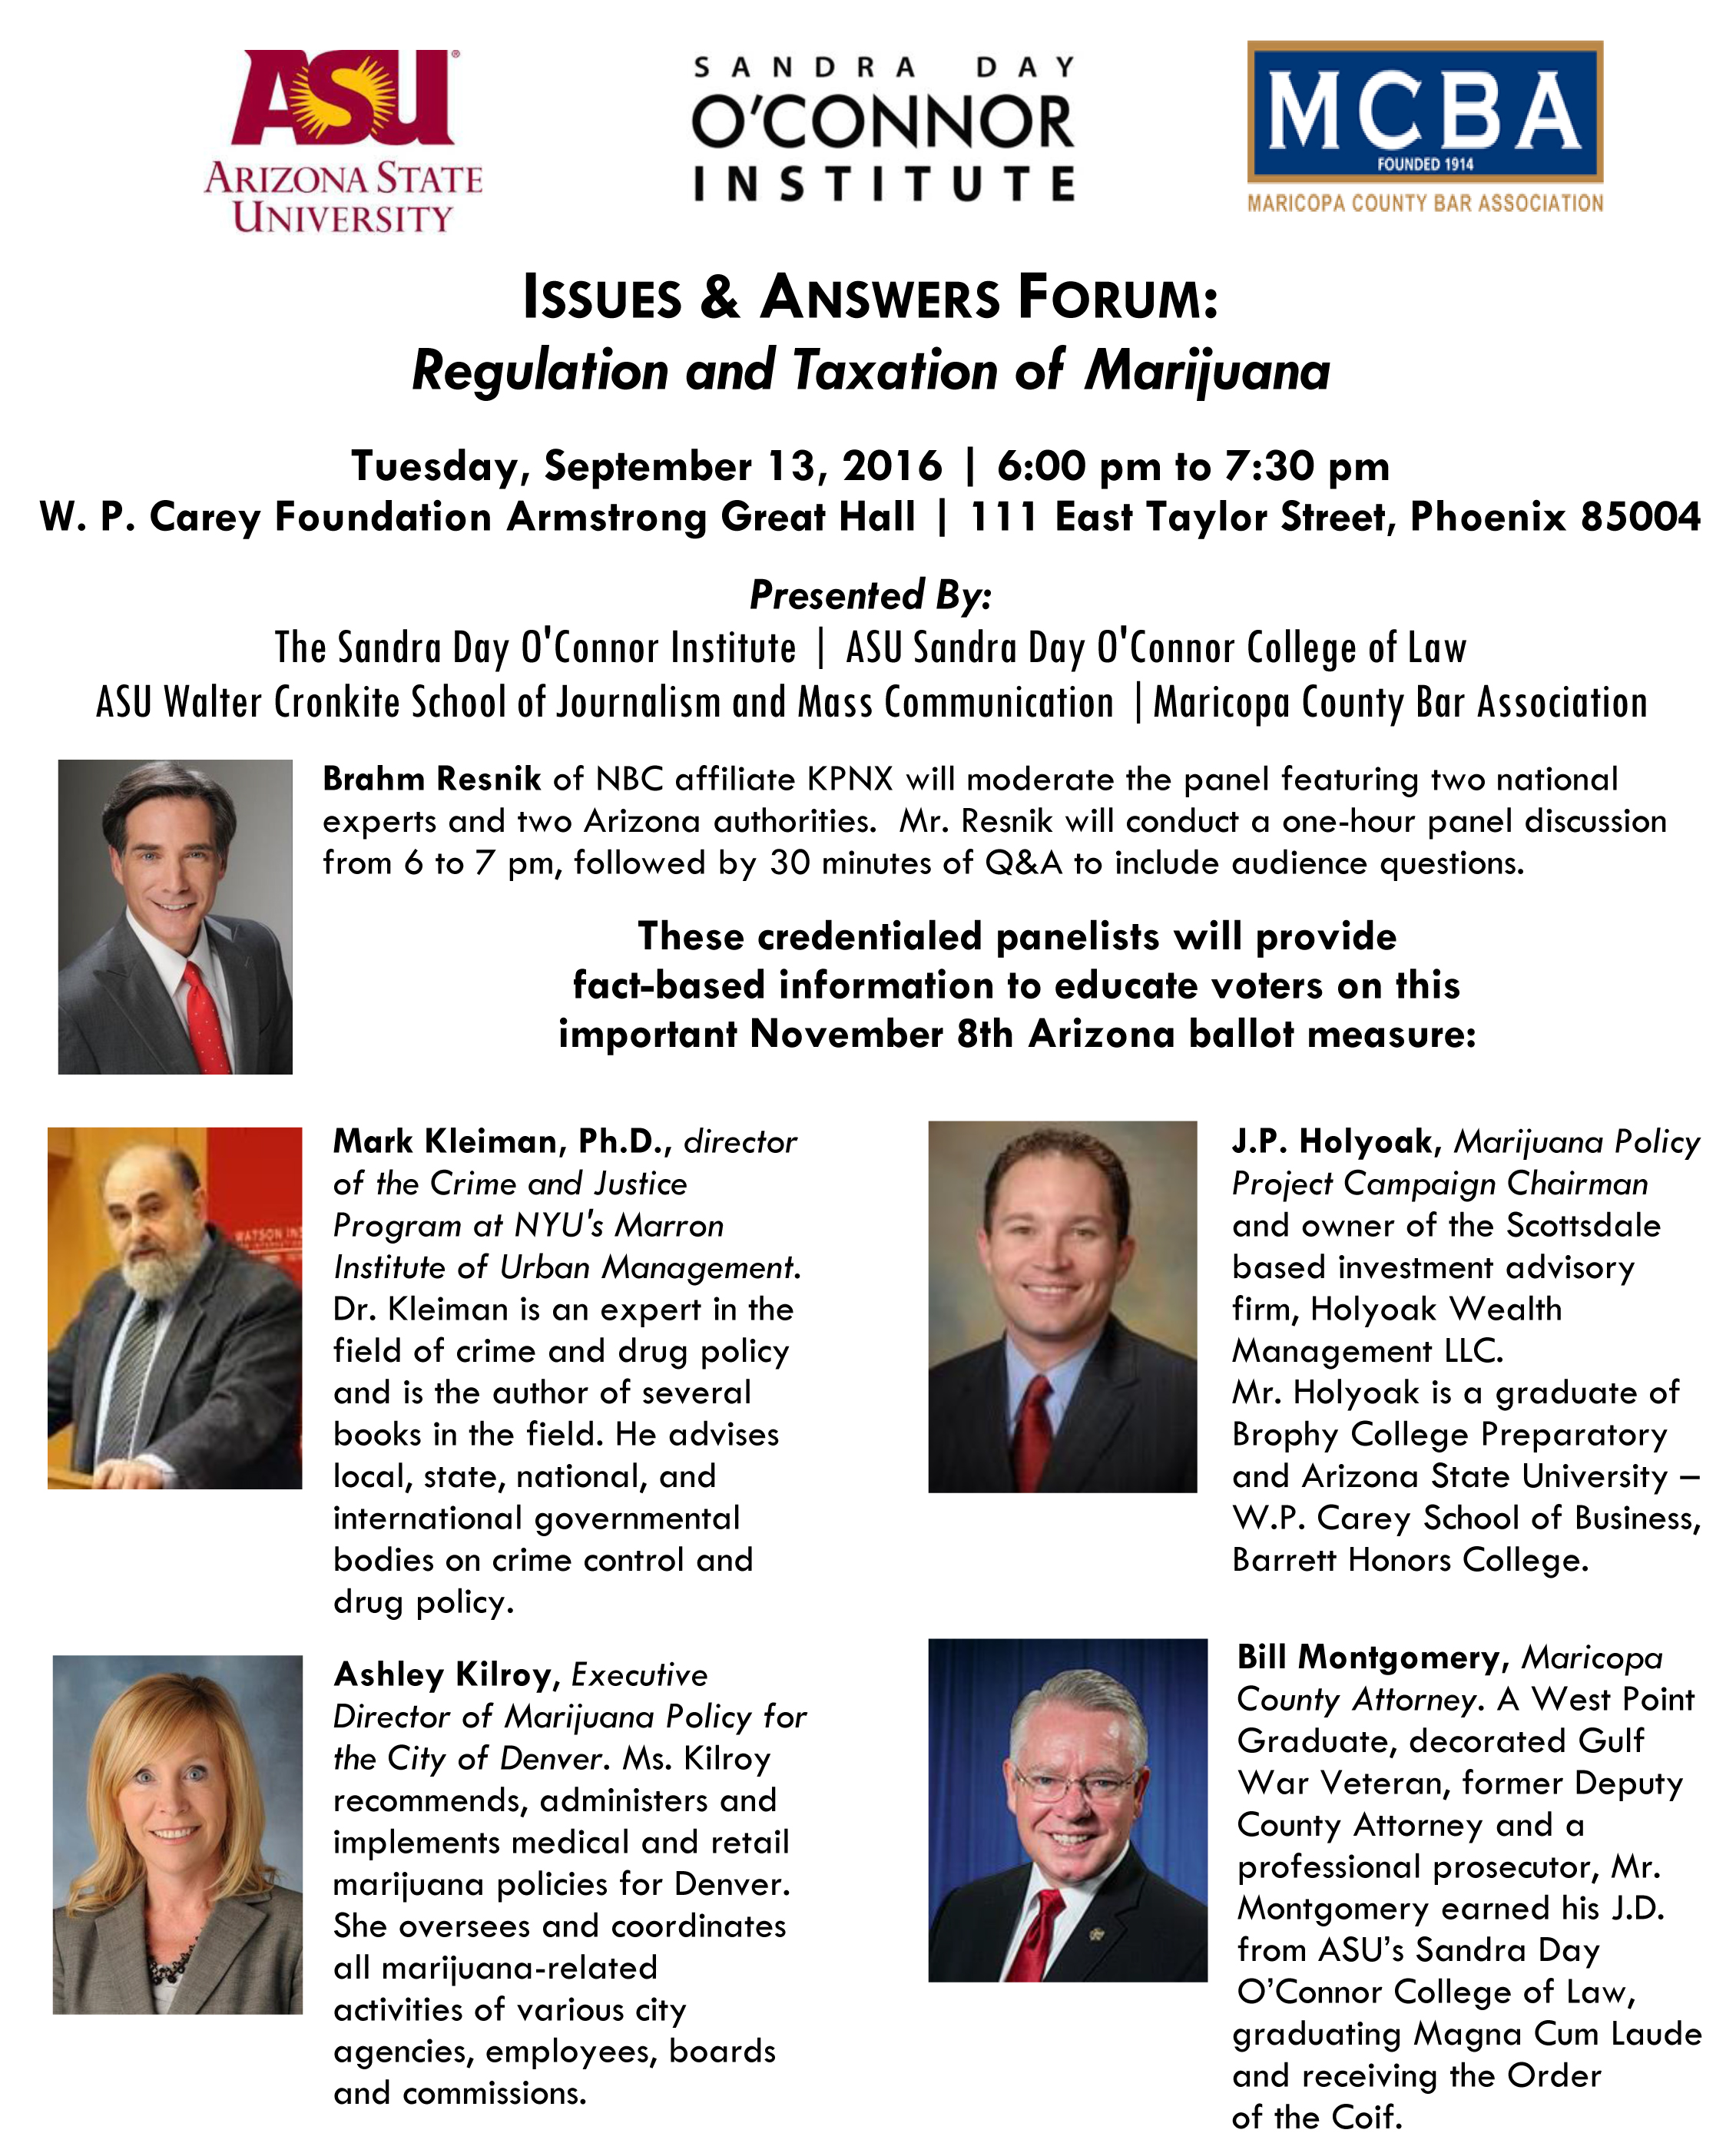 Public Policy Forum flyer from 2016